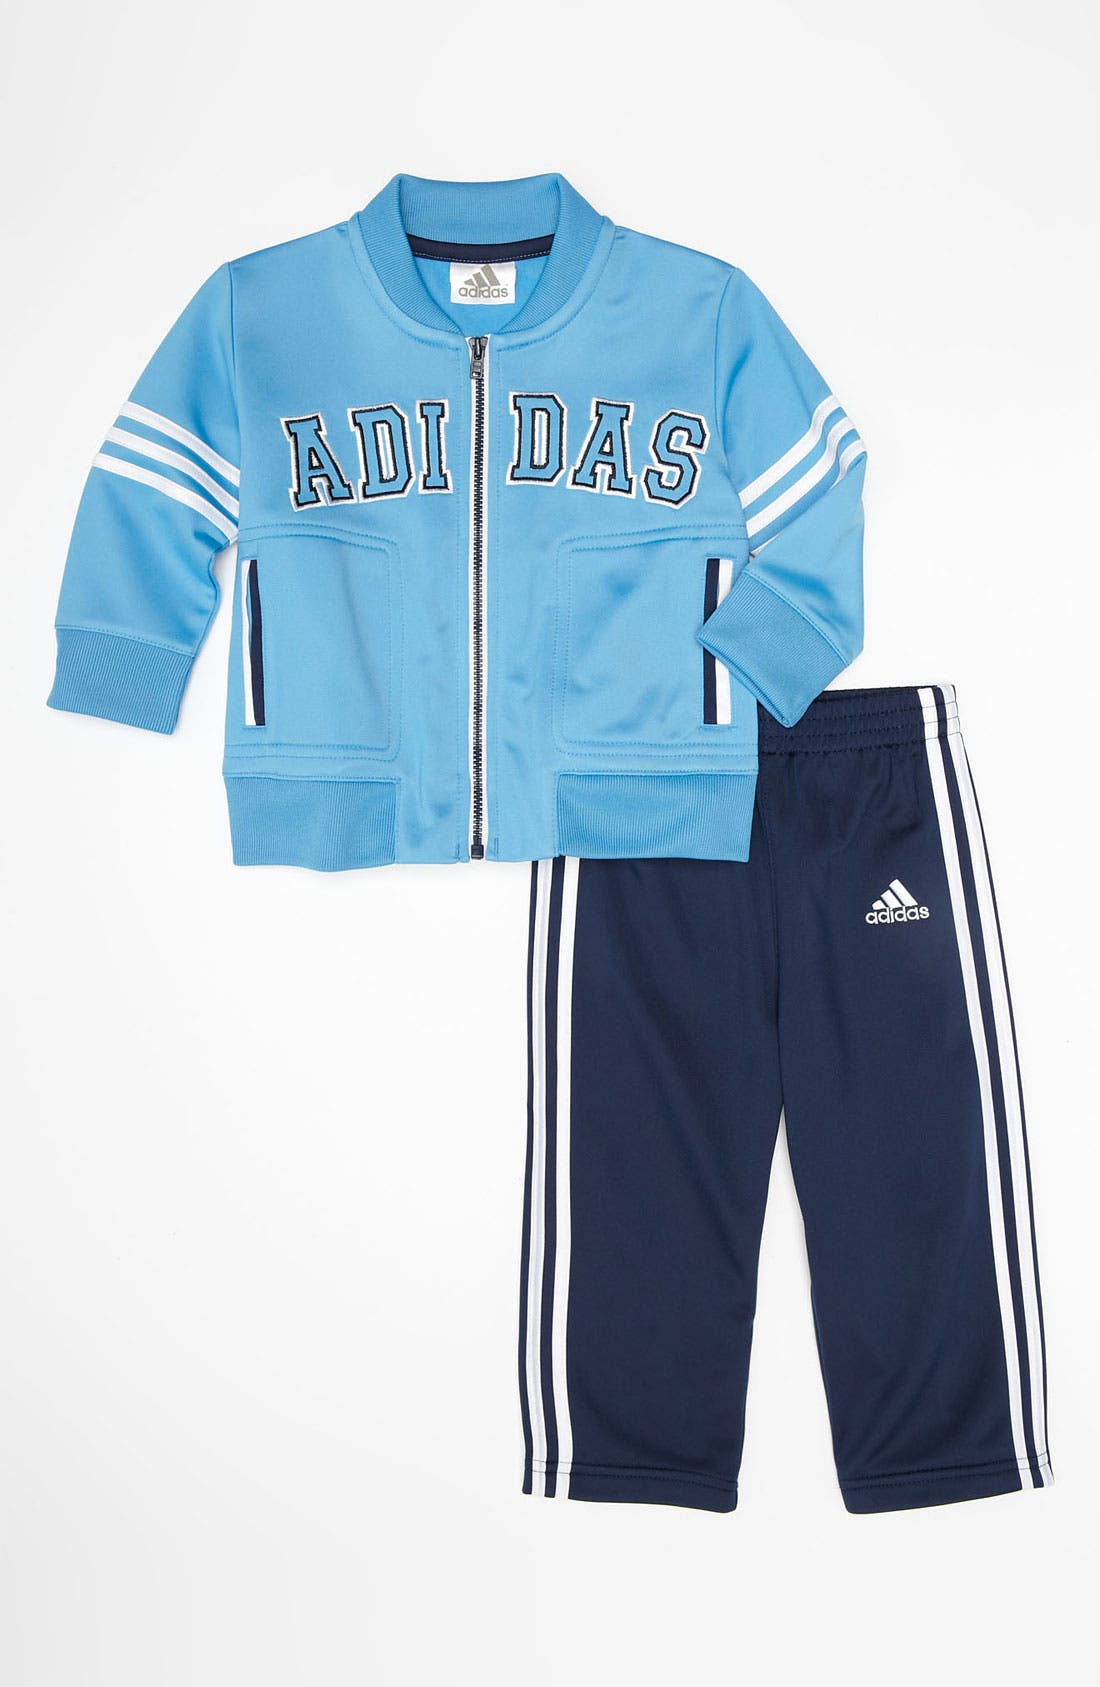 Alternate Image 1 Selected - adidas 'Team' Jacket & Pants (Infant)